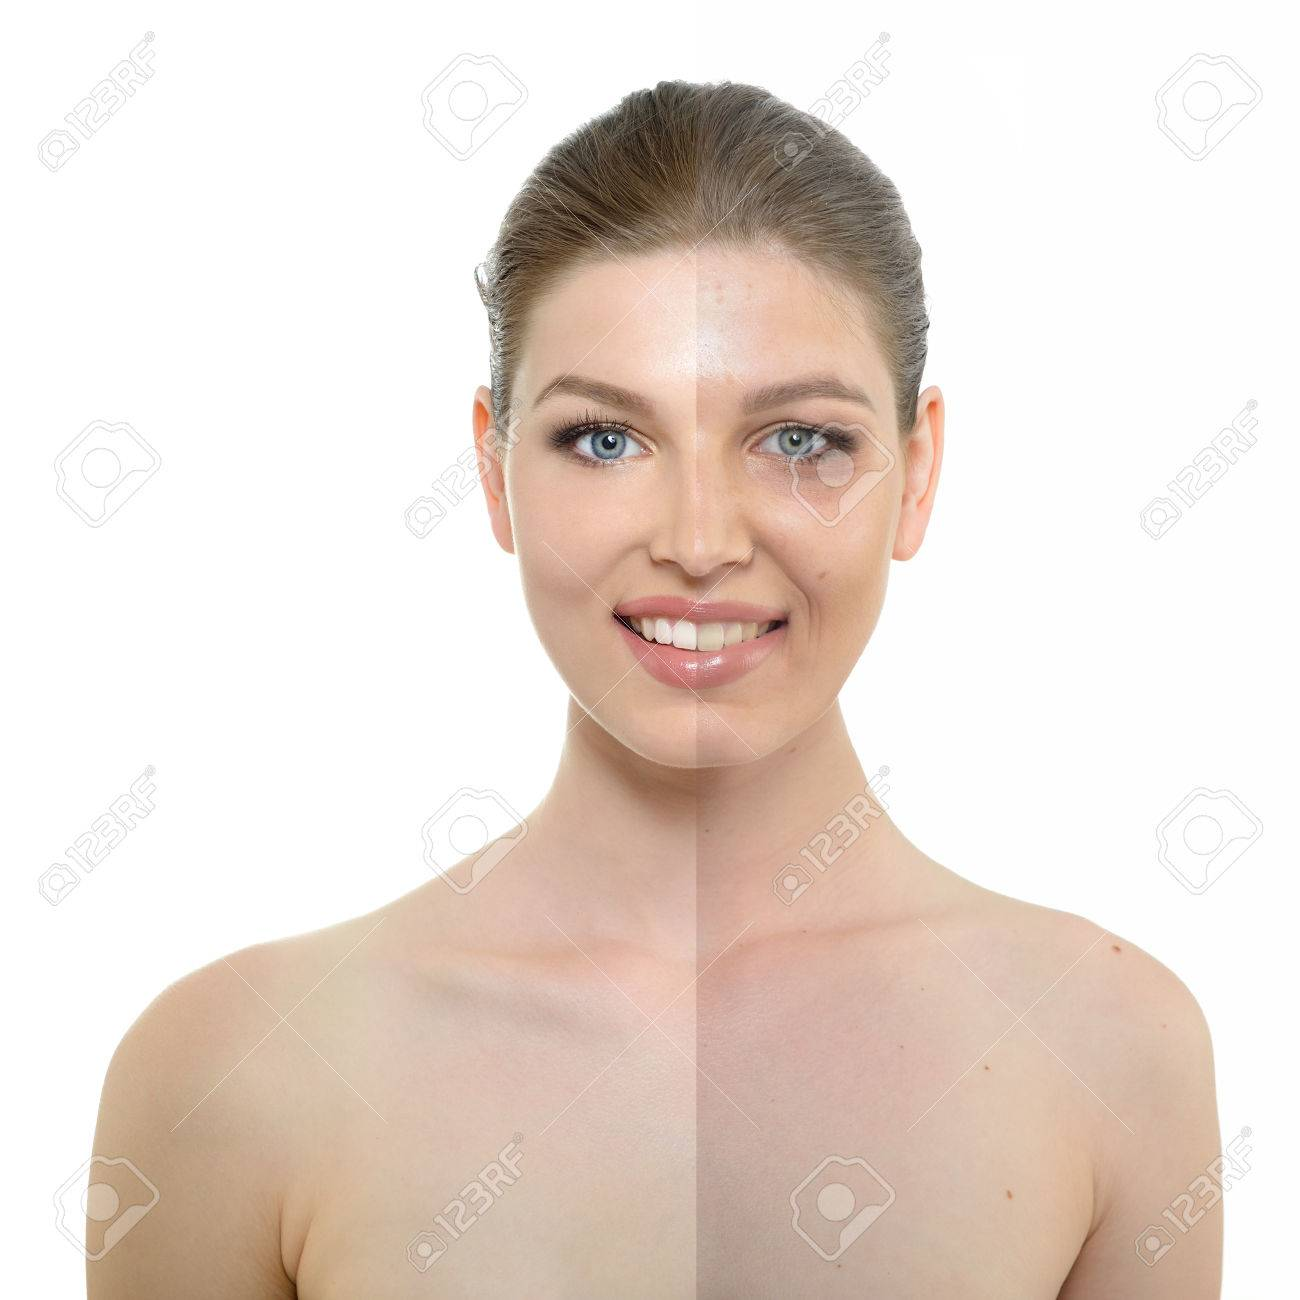 portrait of beautiful woman with problem and clean skin, aging and youth concept - 43233006